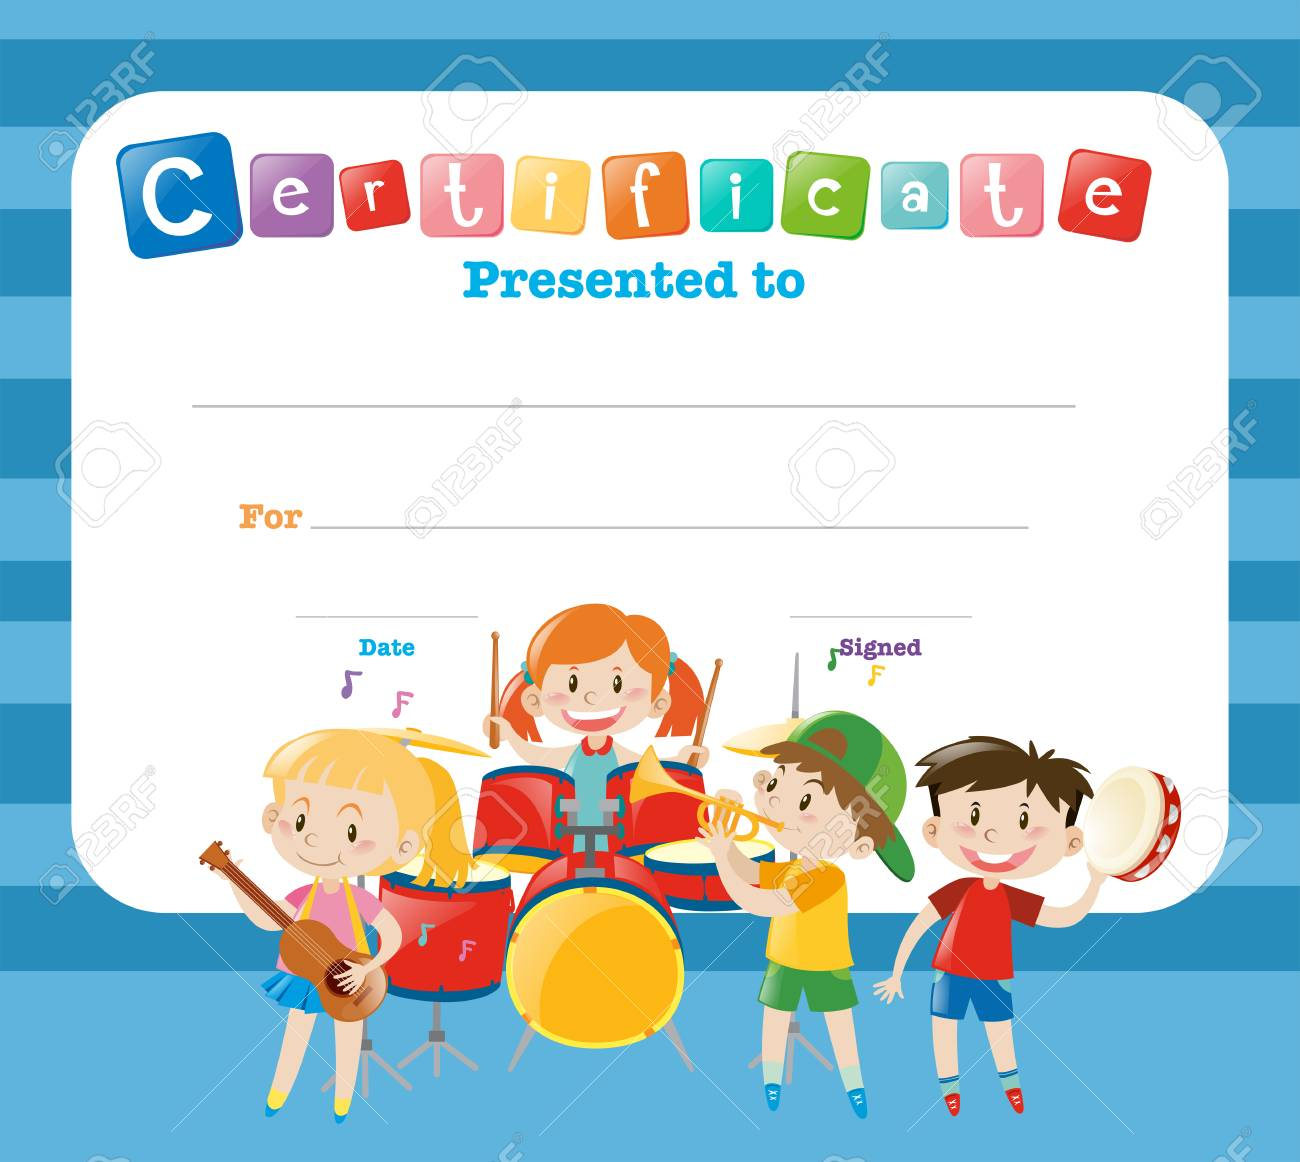 Certificate Template With Kids In The Band Illustration Royalty Free ...